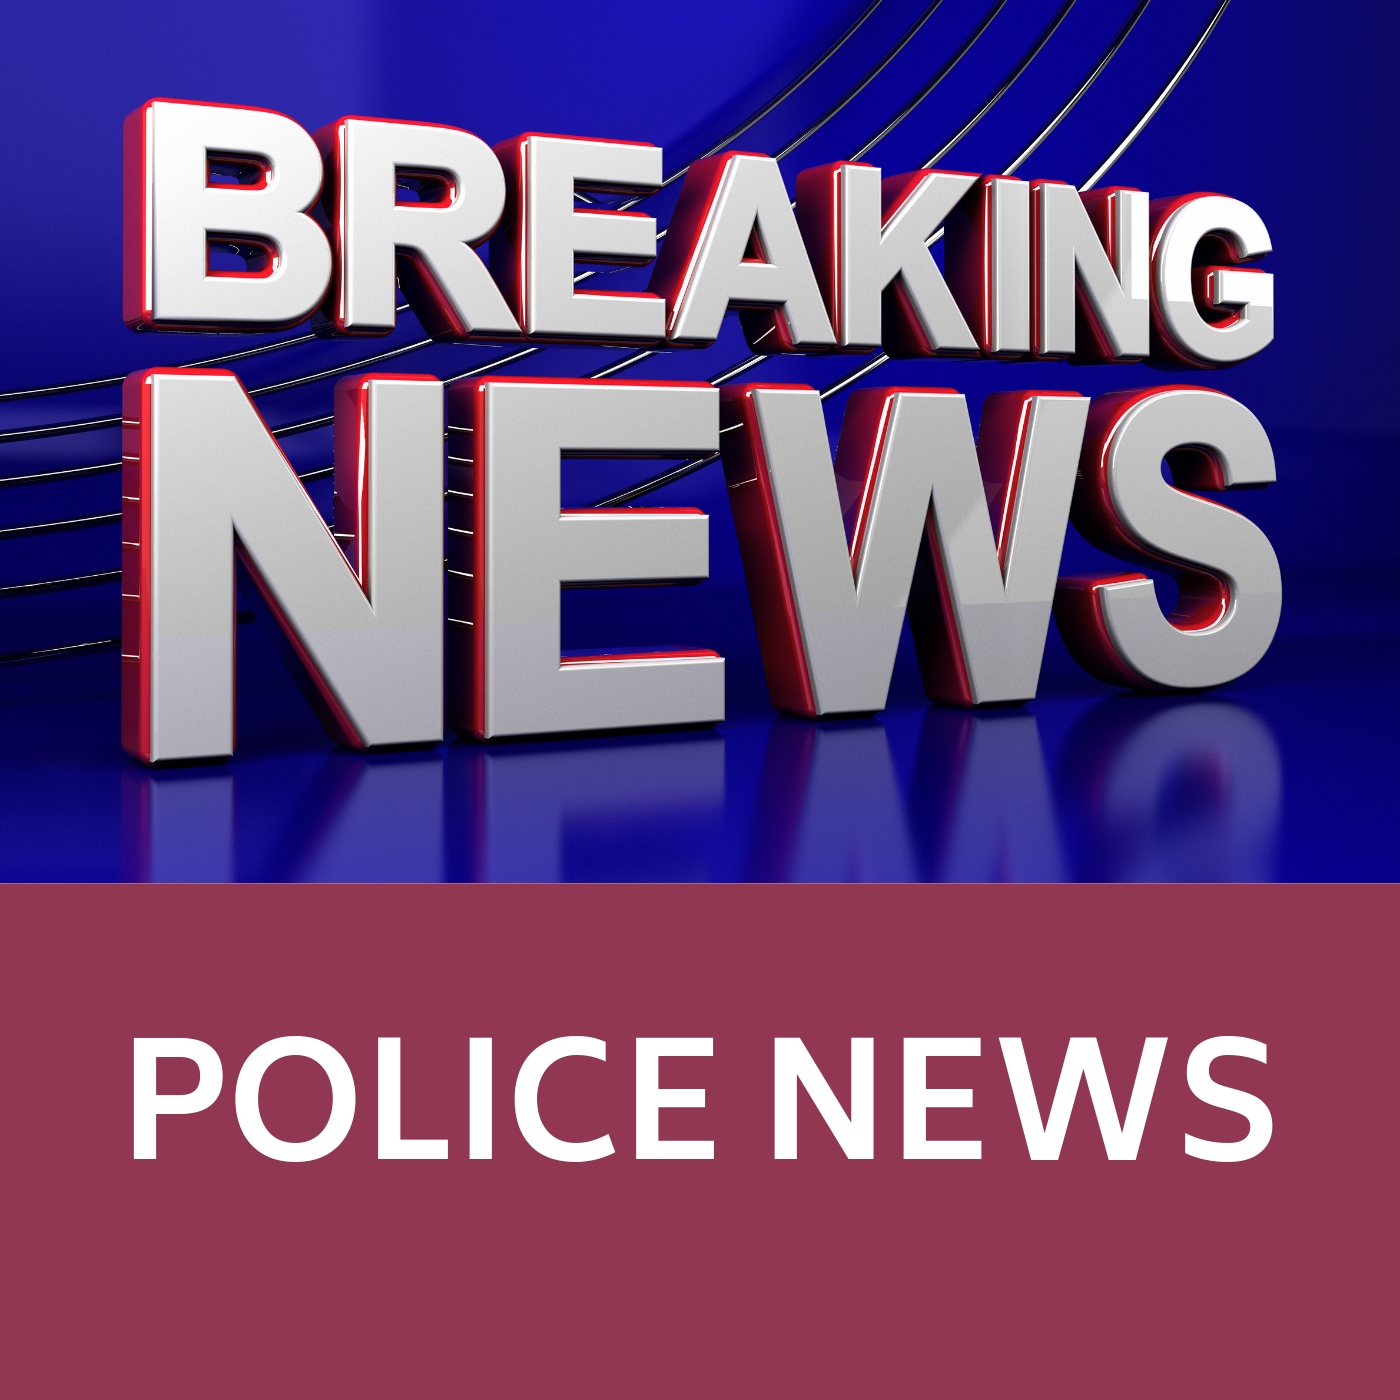 Breaking News icon that redirects to the www.abingtonpd.org.